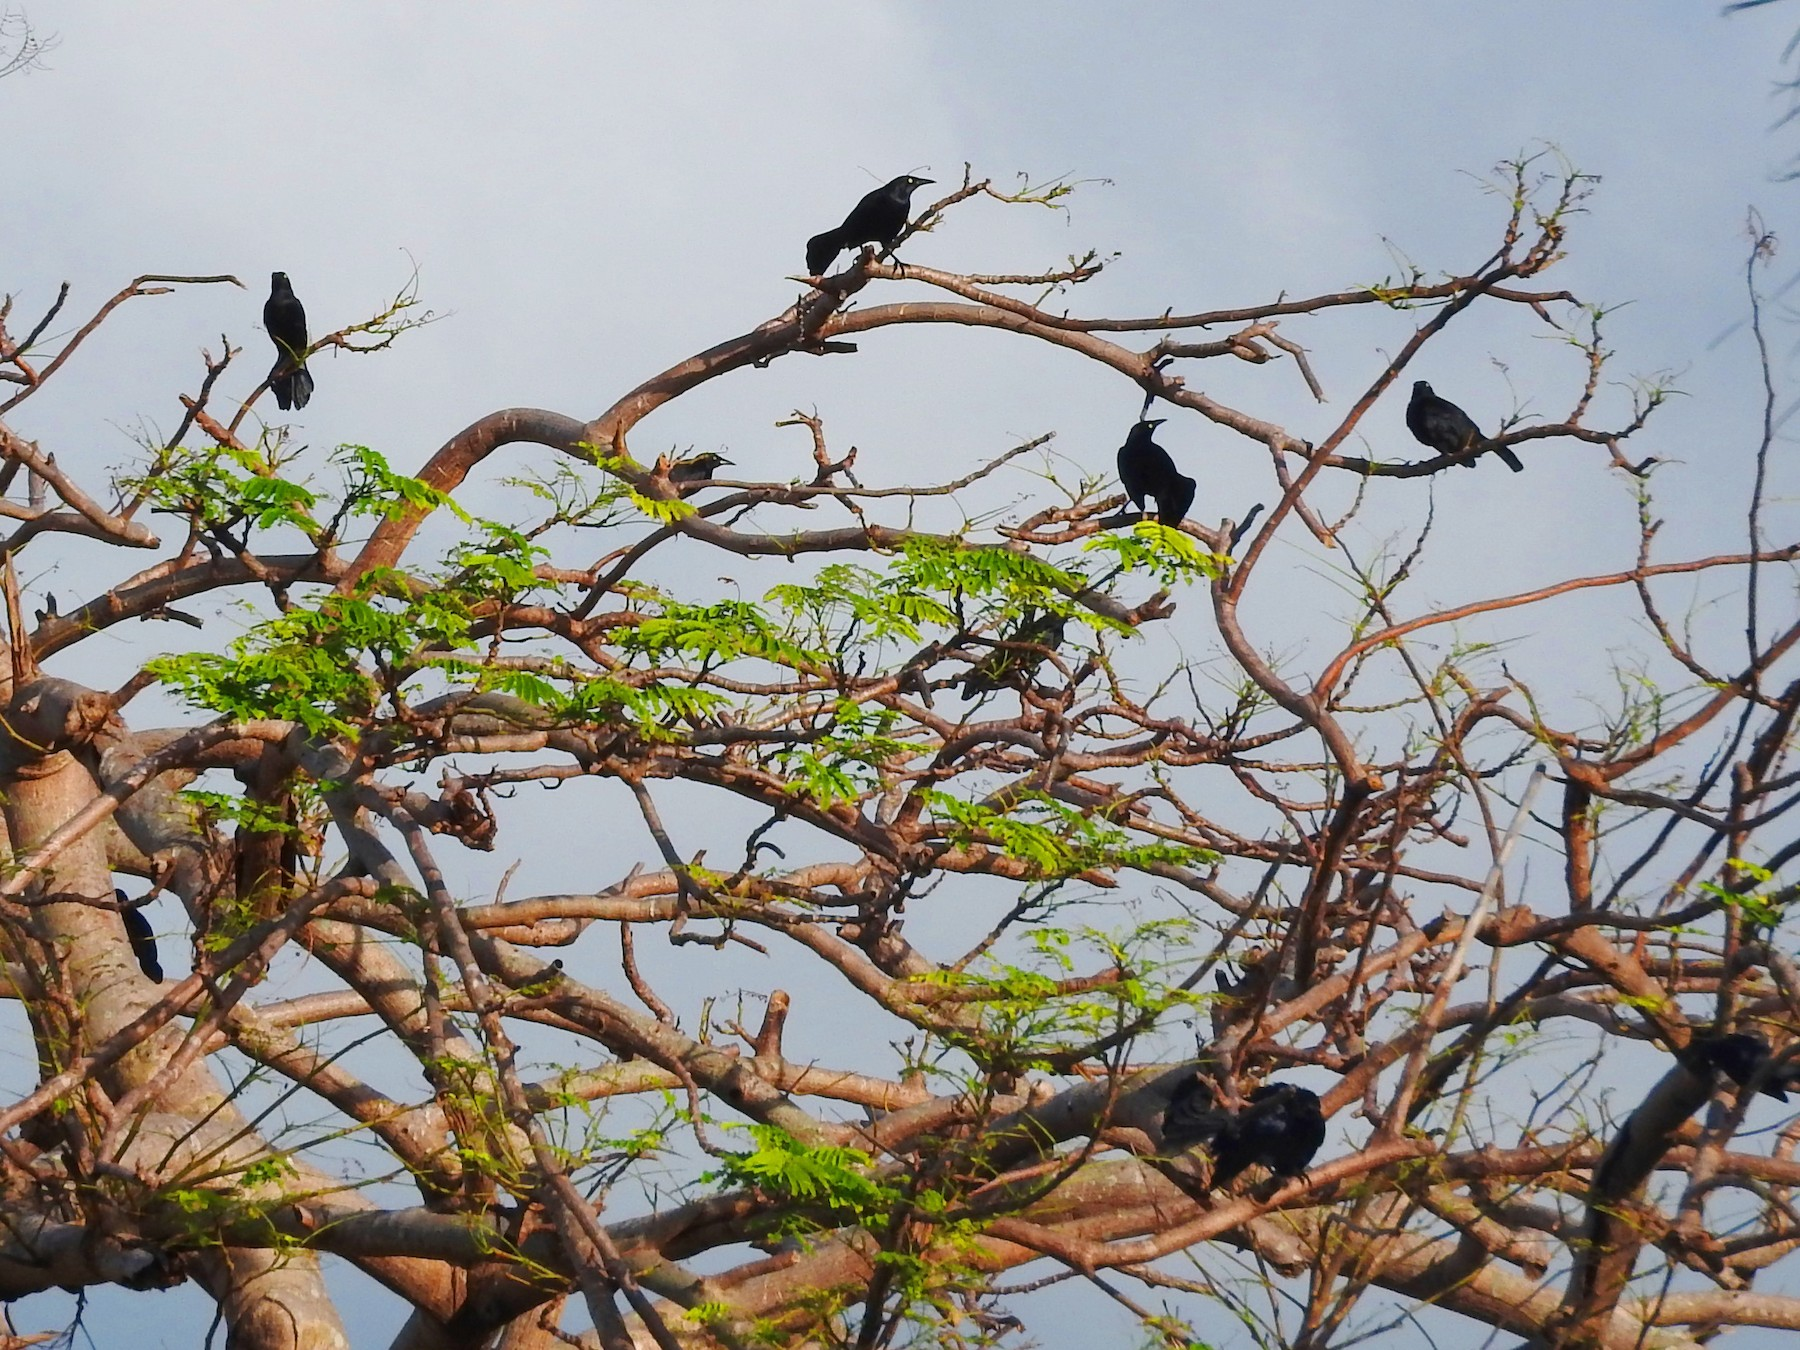 Greater Antillean Grackle - Eric Haskell